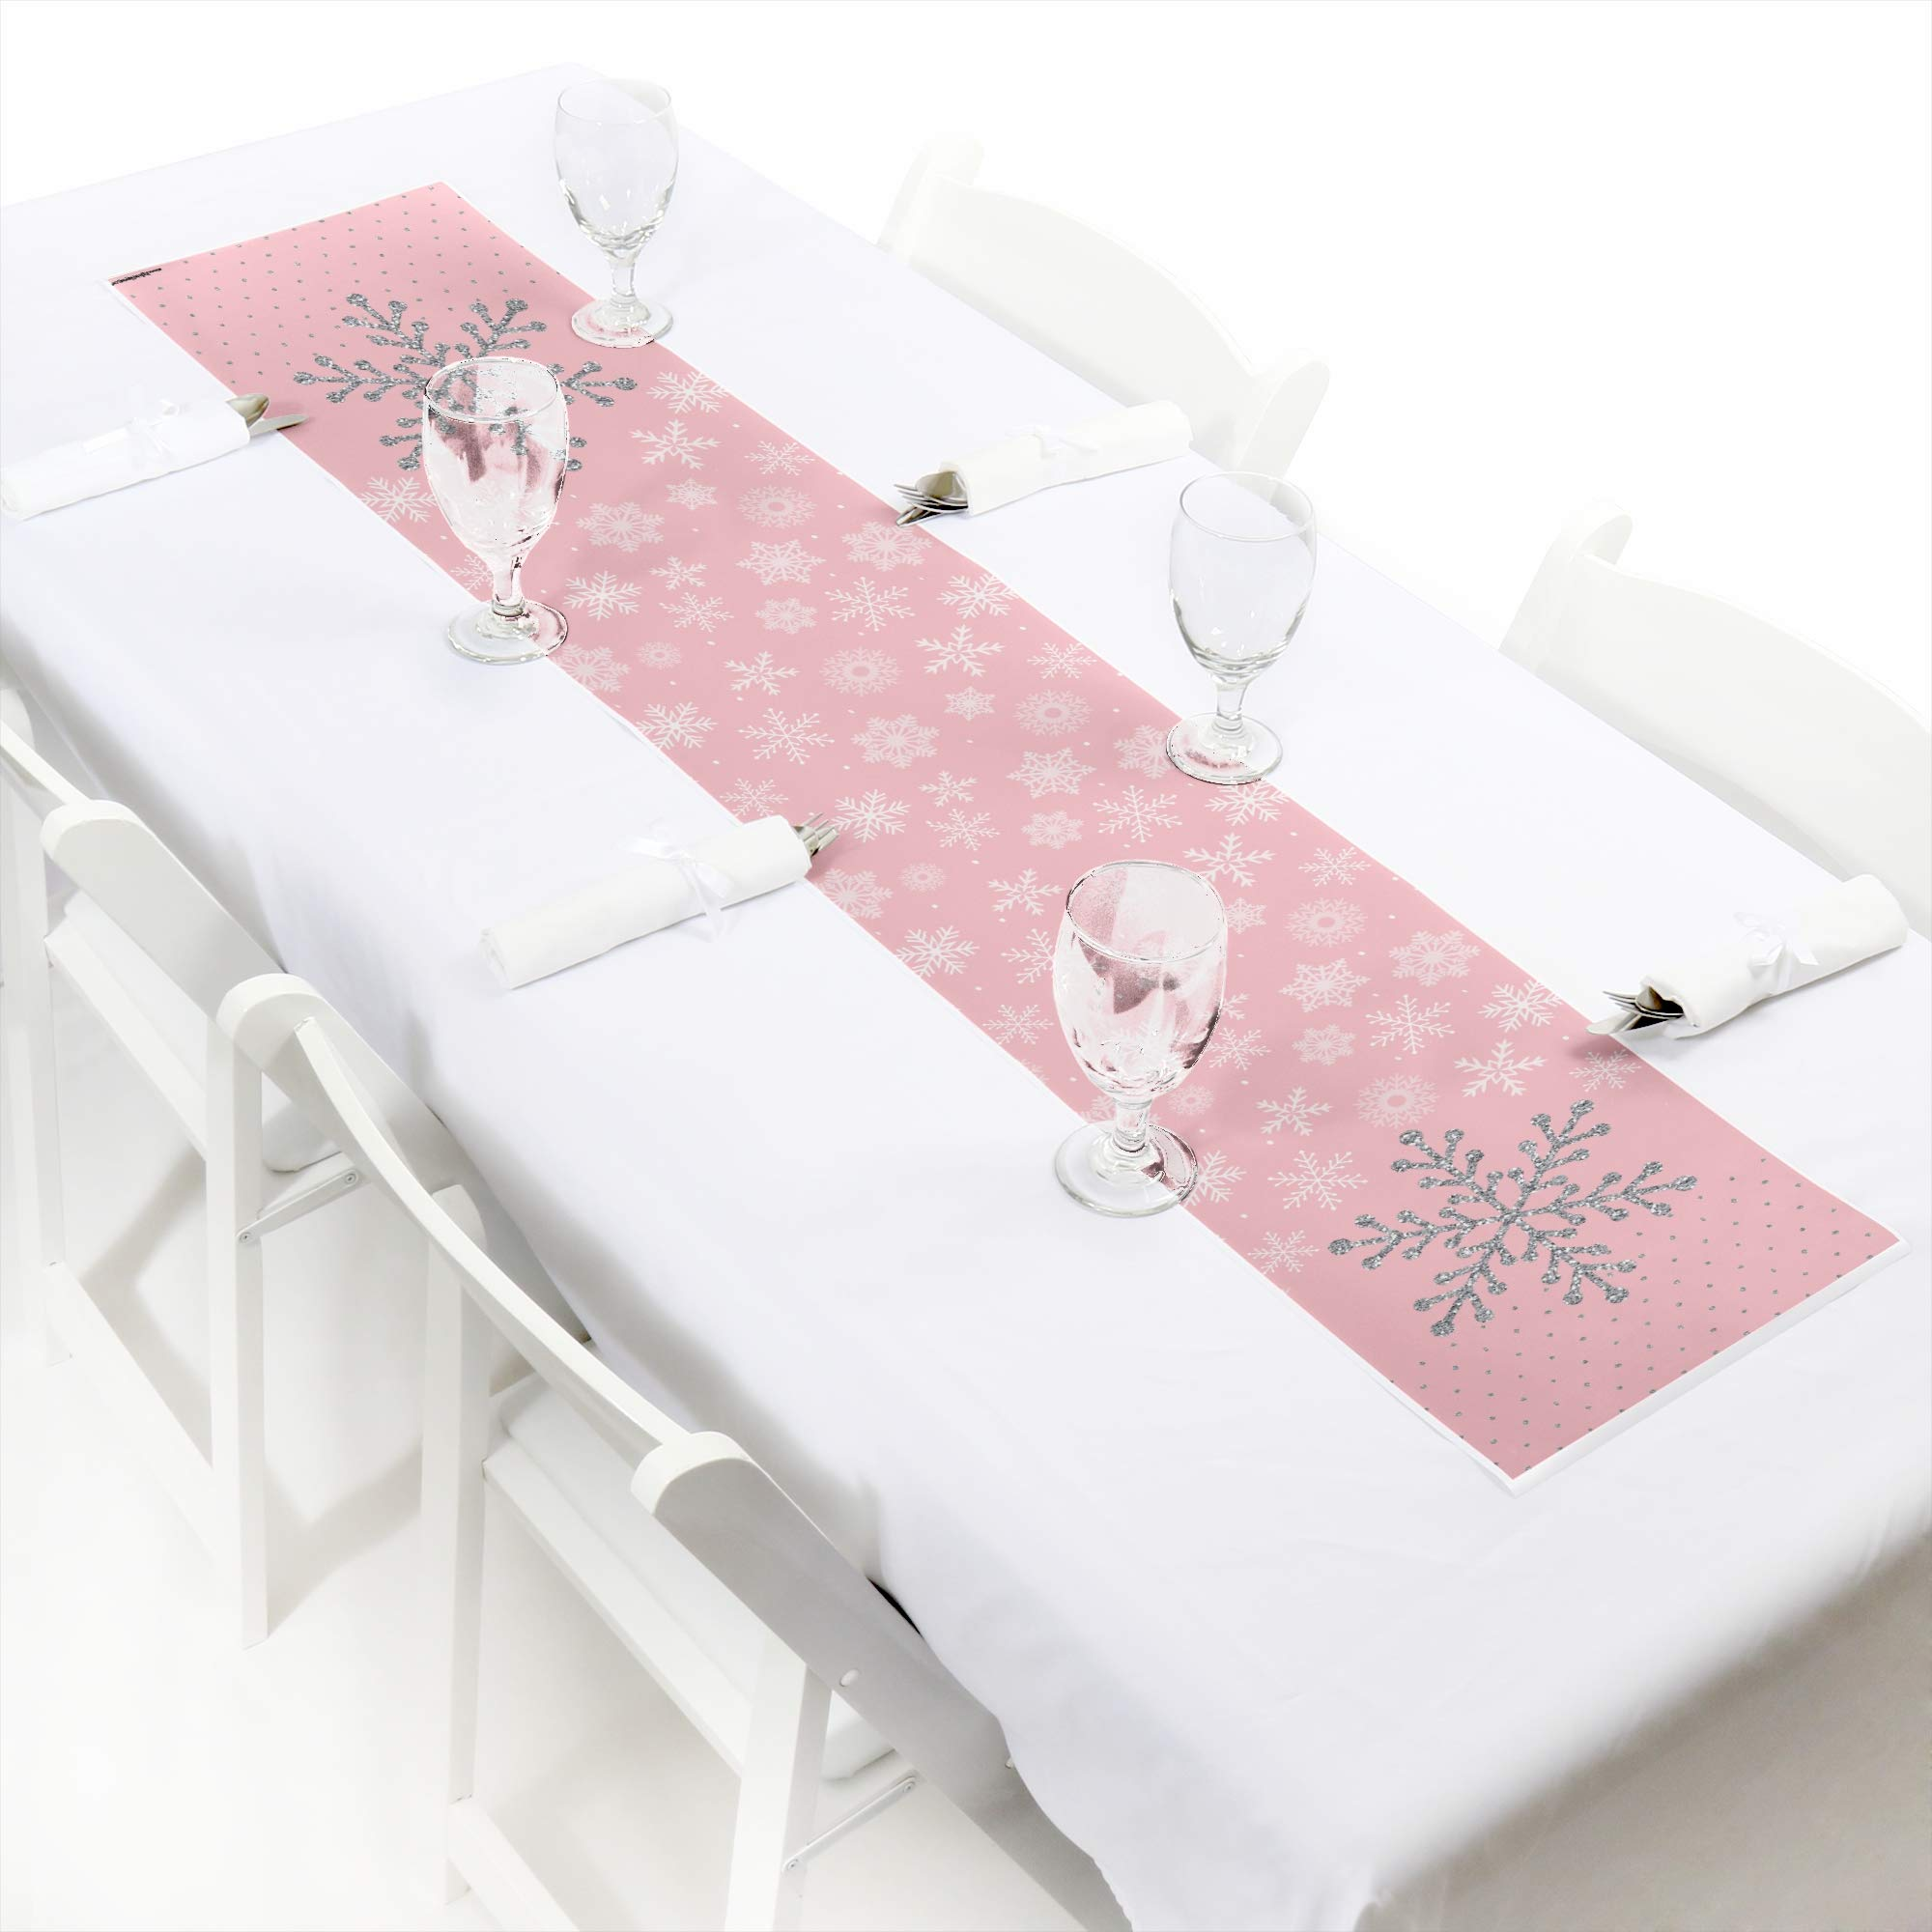 Big Dot of Happiness Pink Winter Wonderland - Petite Holiday Snowflake Birthday Party or Baby Shower Paper Table Runner - 12 x 60 inches by Big Dot of Happiness